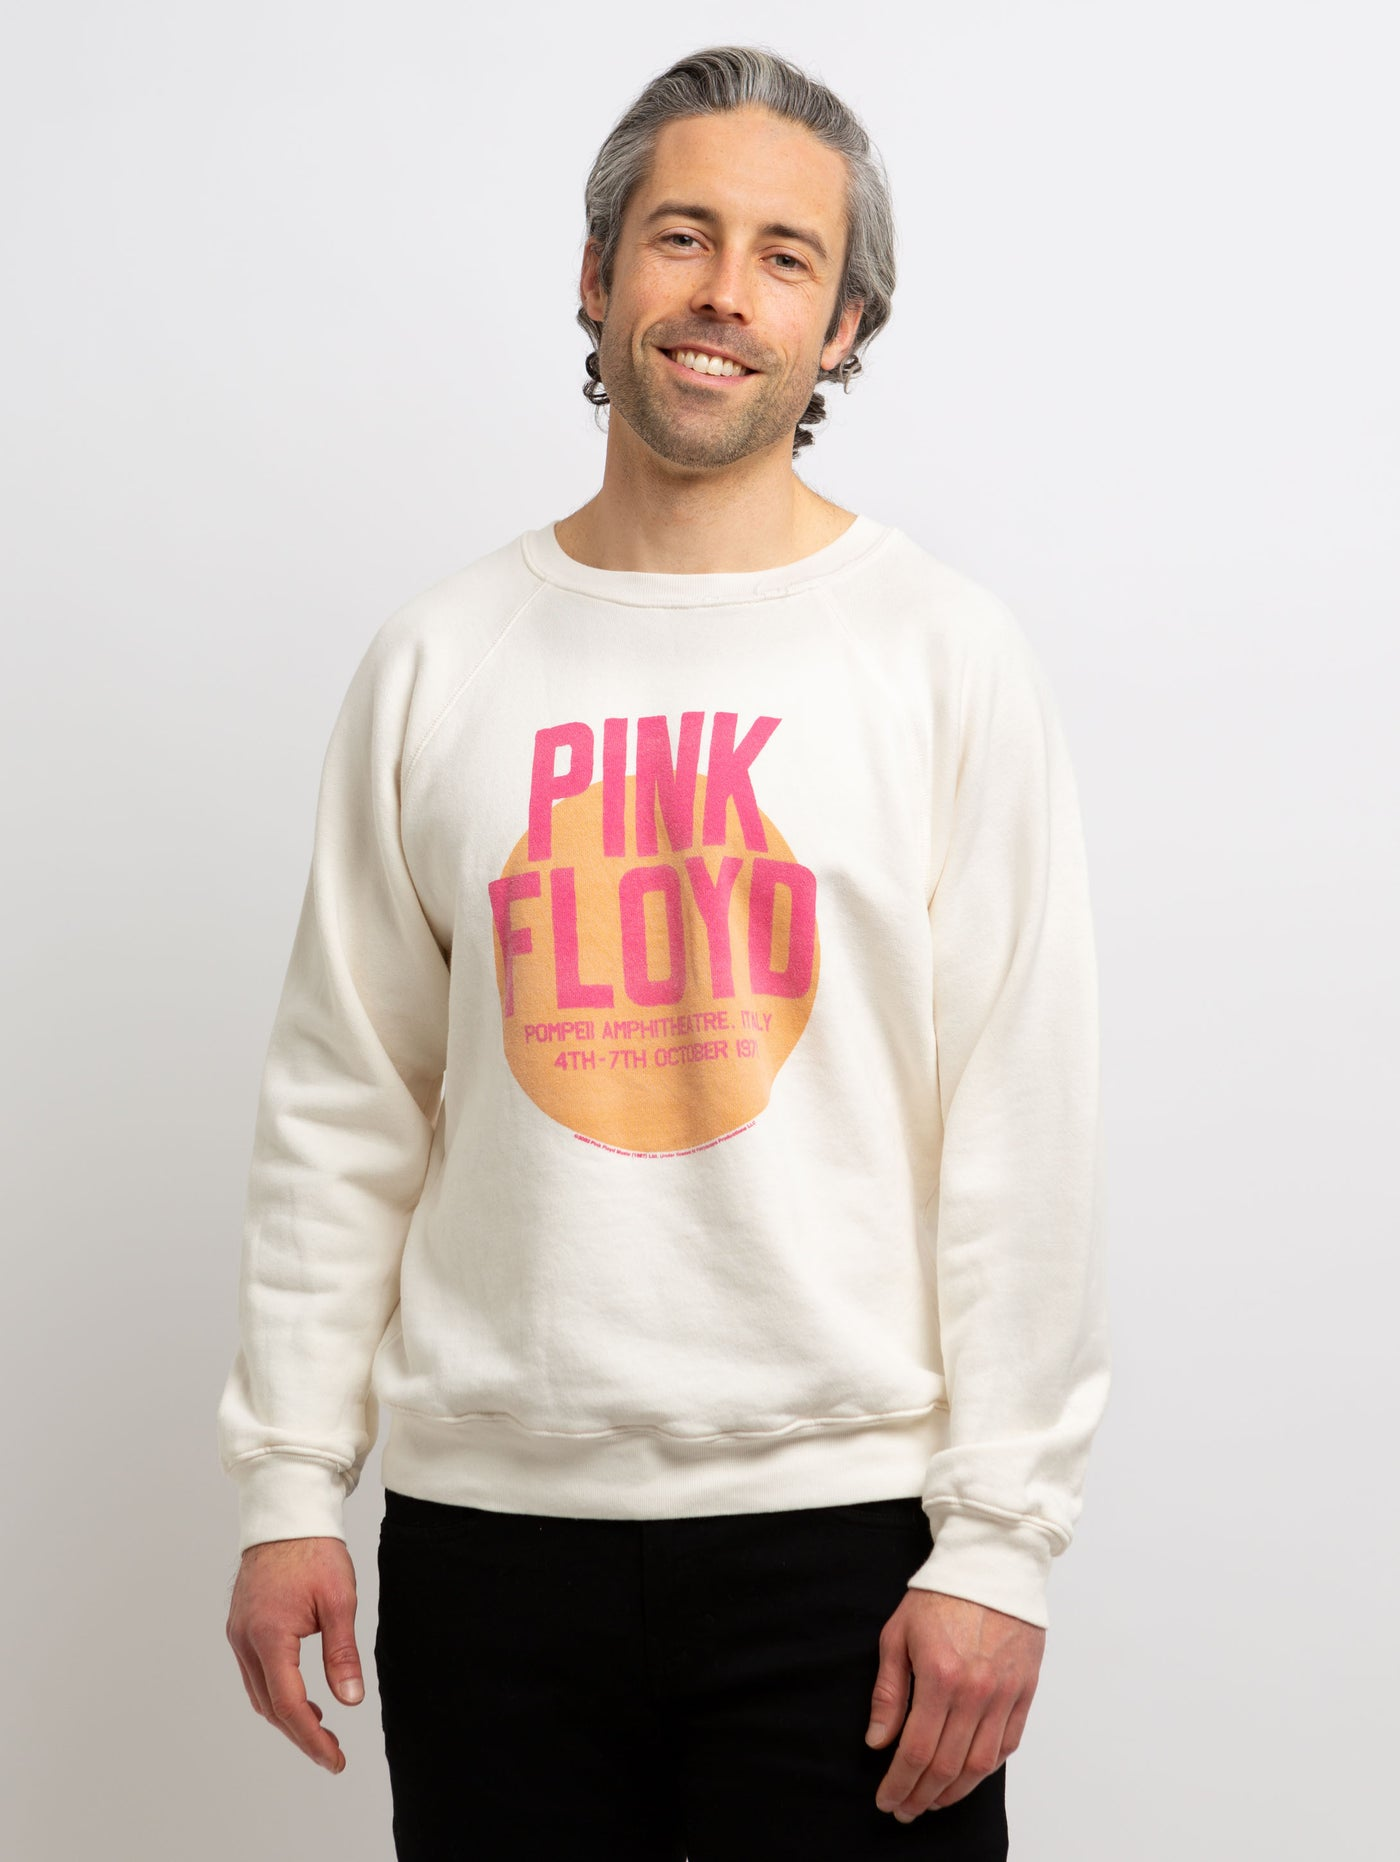 Pink Floyd Pompeii Sweatshirt-Retro Brand-Over the Rainbow